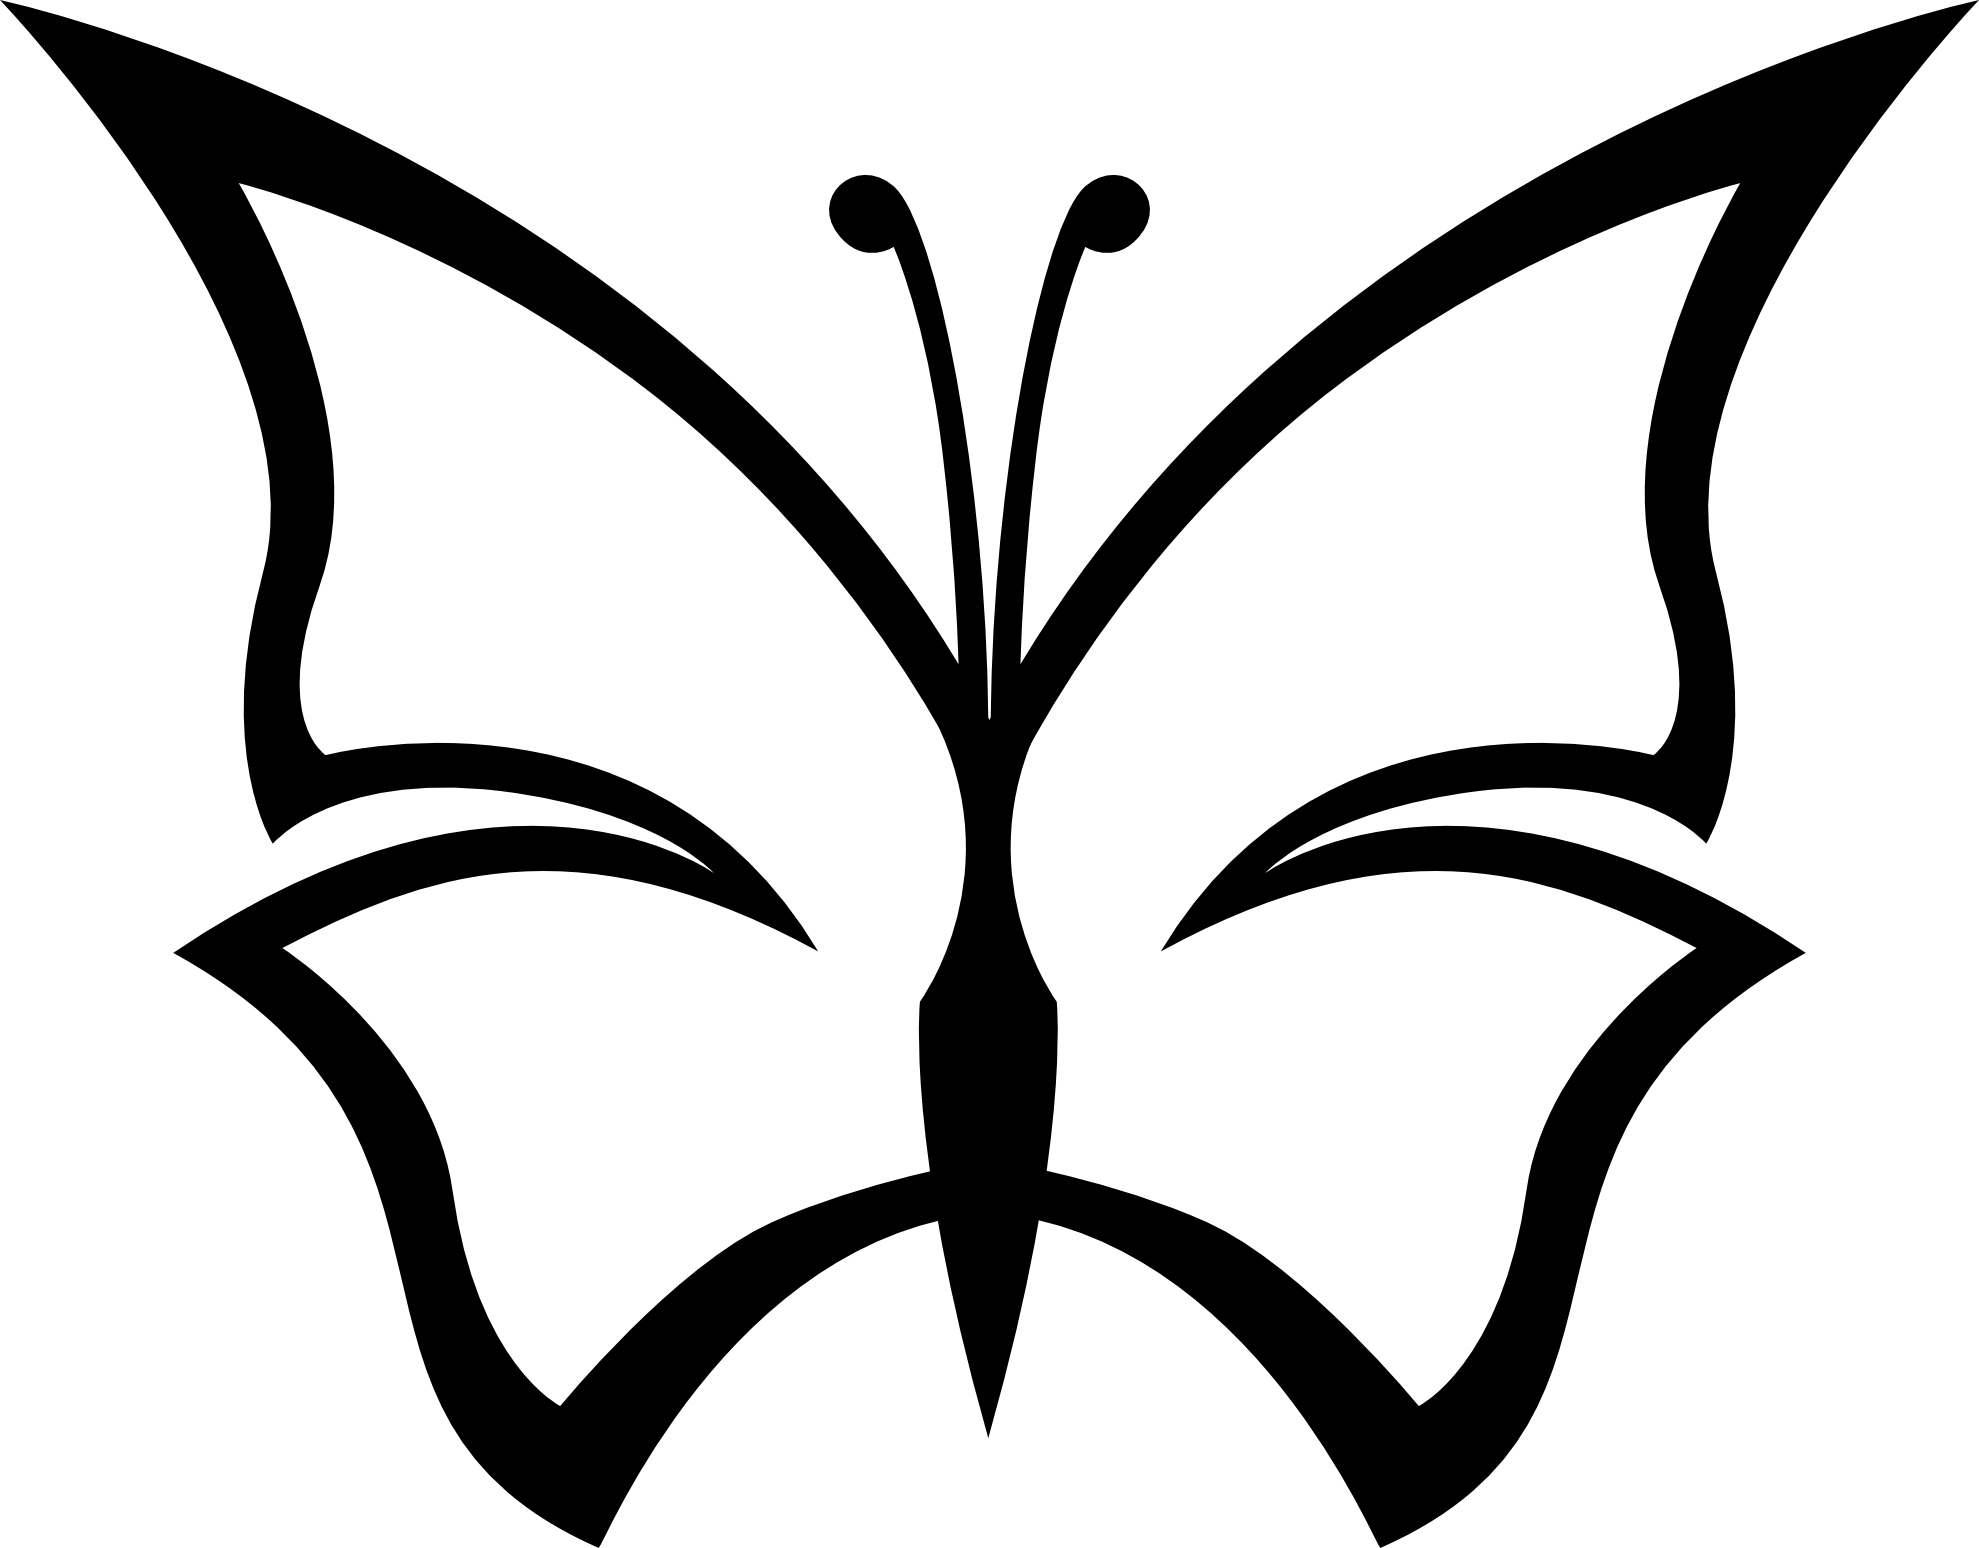 Line Drawing Name : Butterfly line drawing clipart best